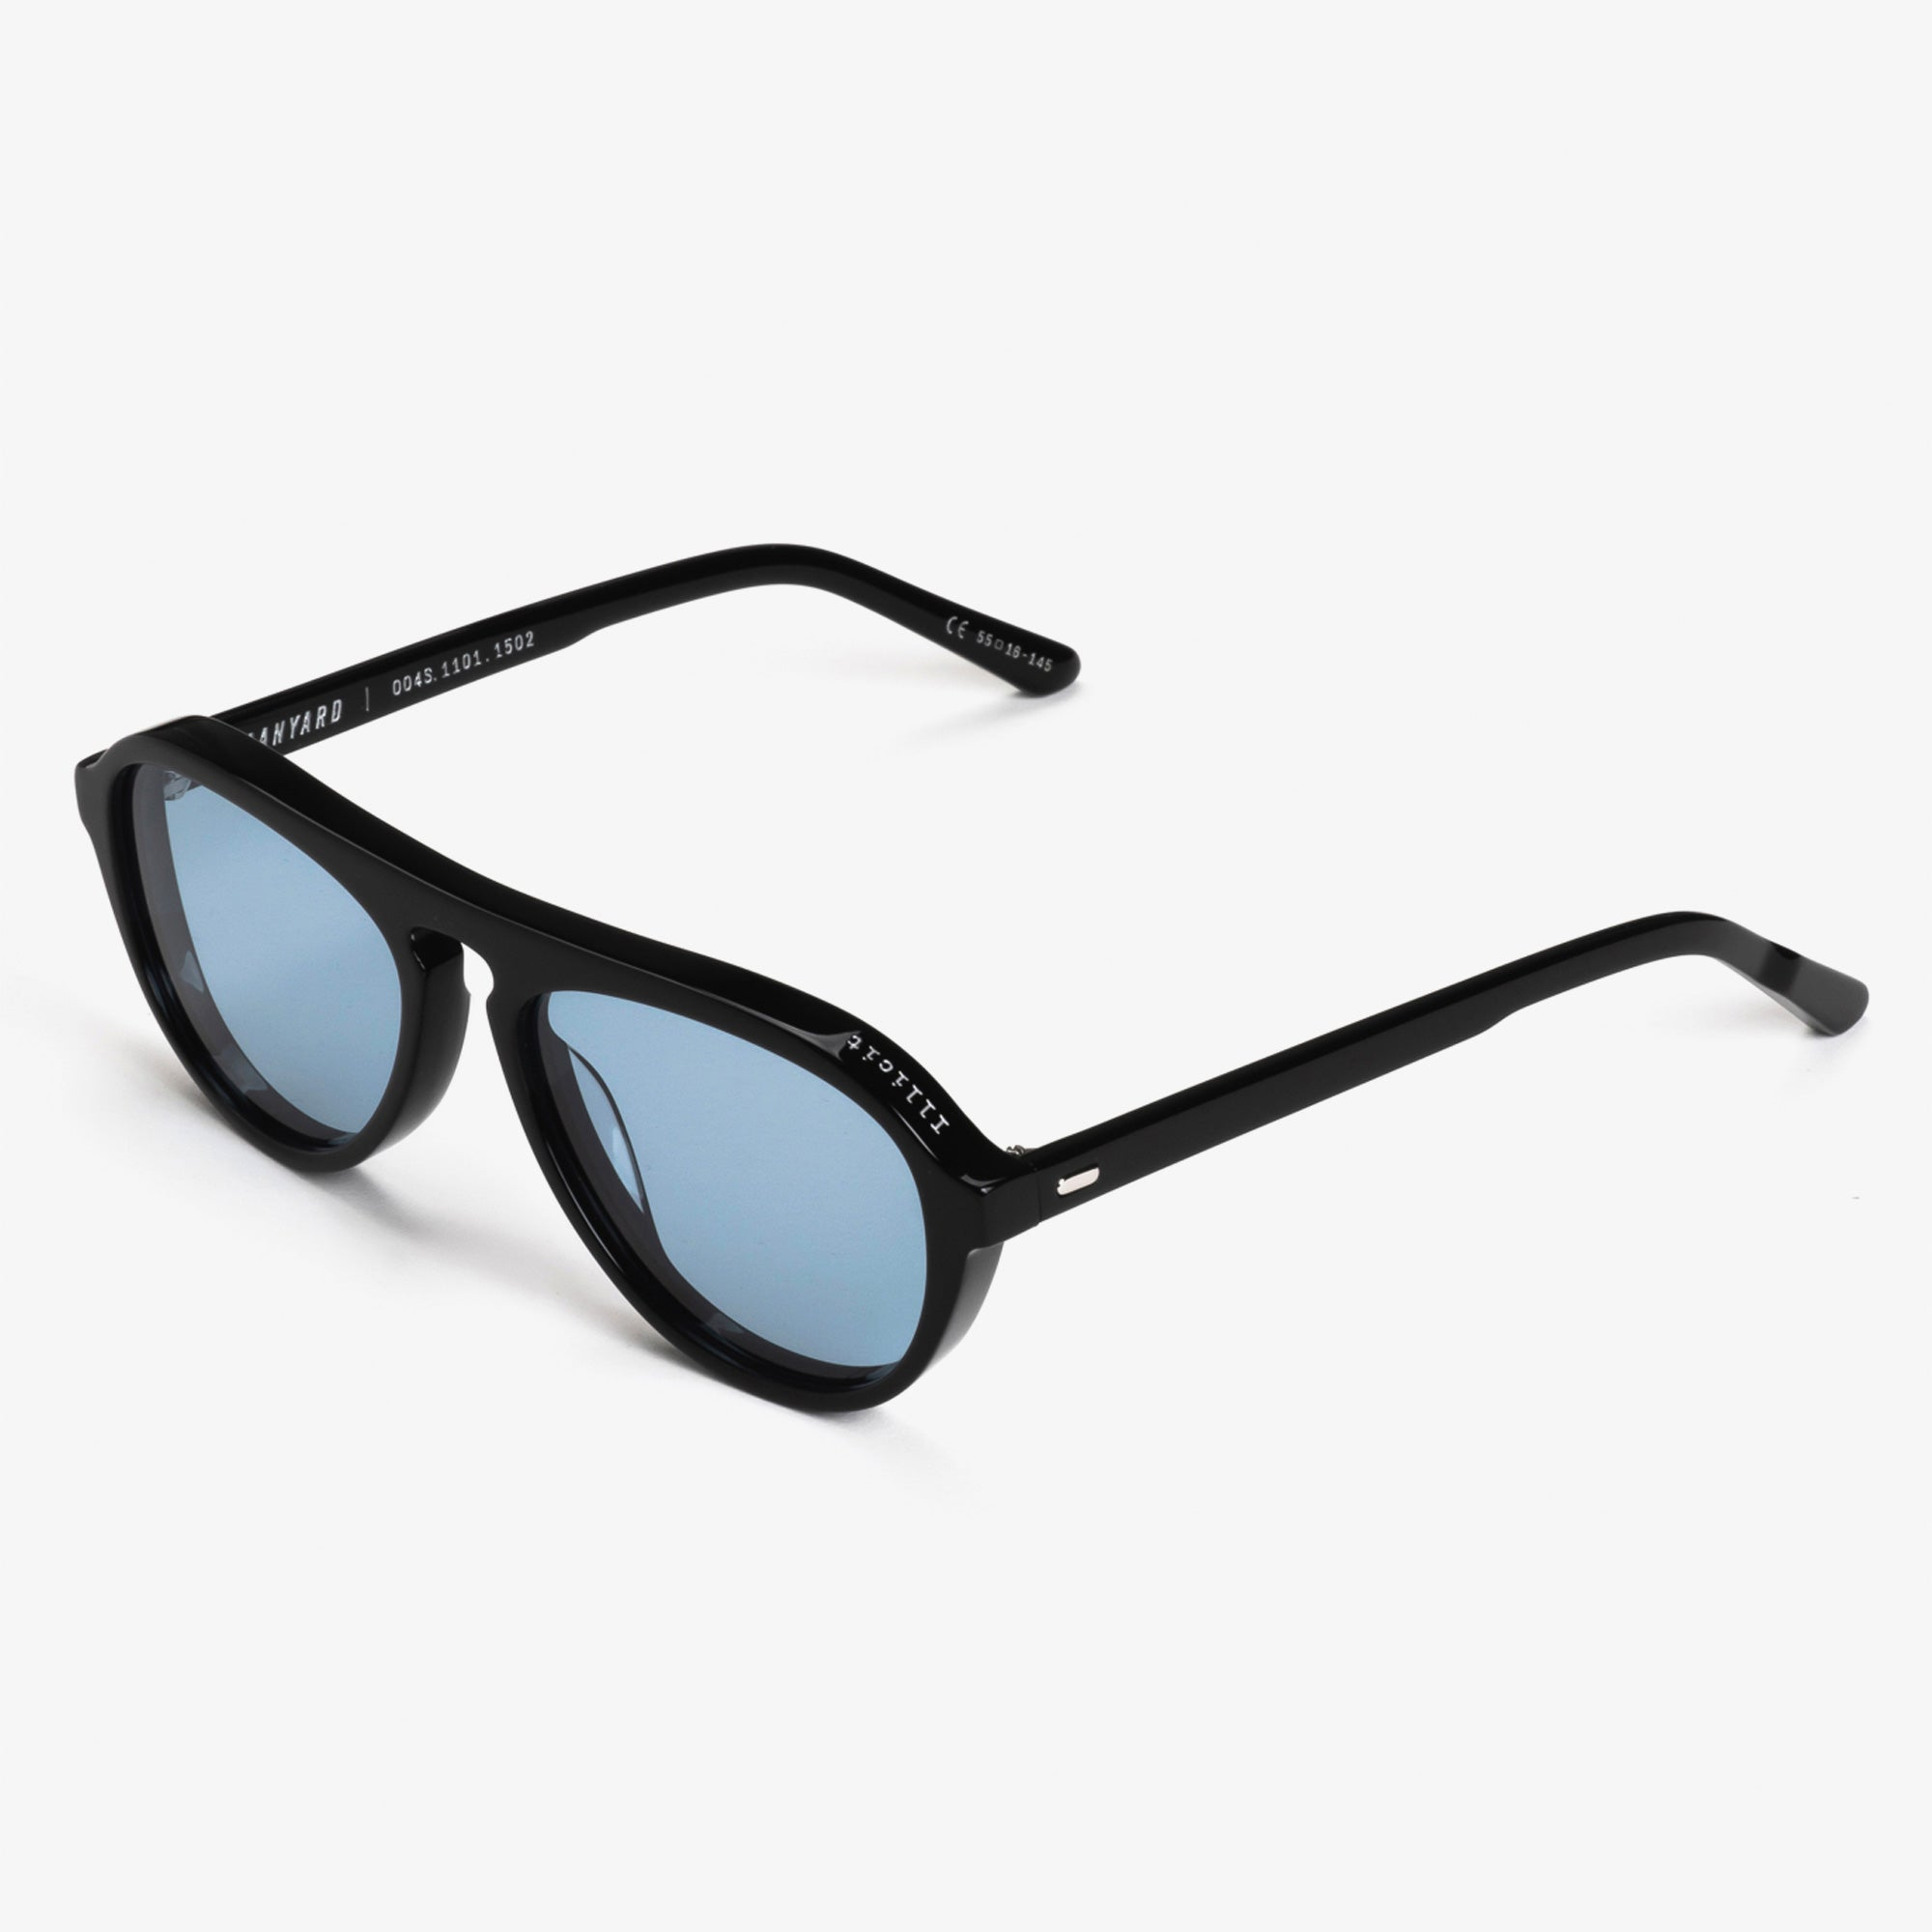 Vaanyard Illicit - Black Mono Gloss / Light Blue 2